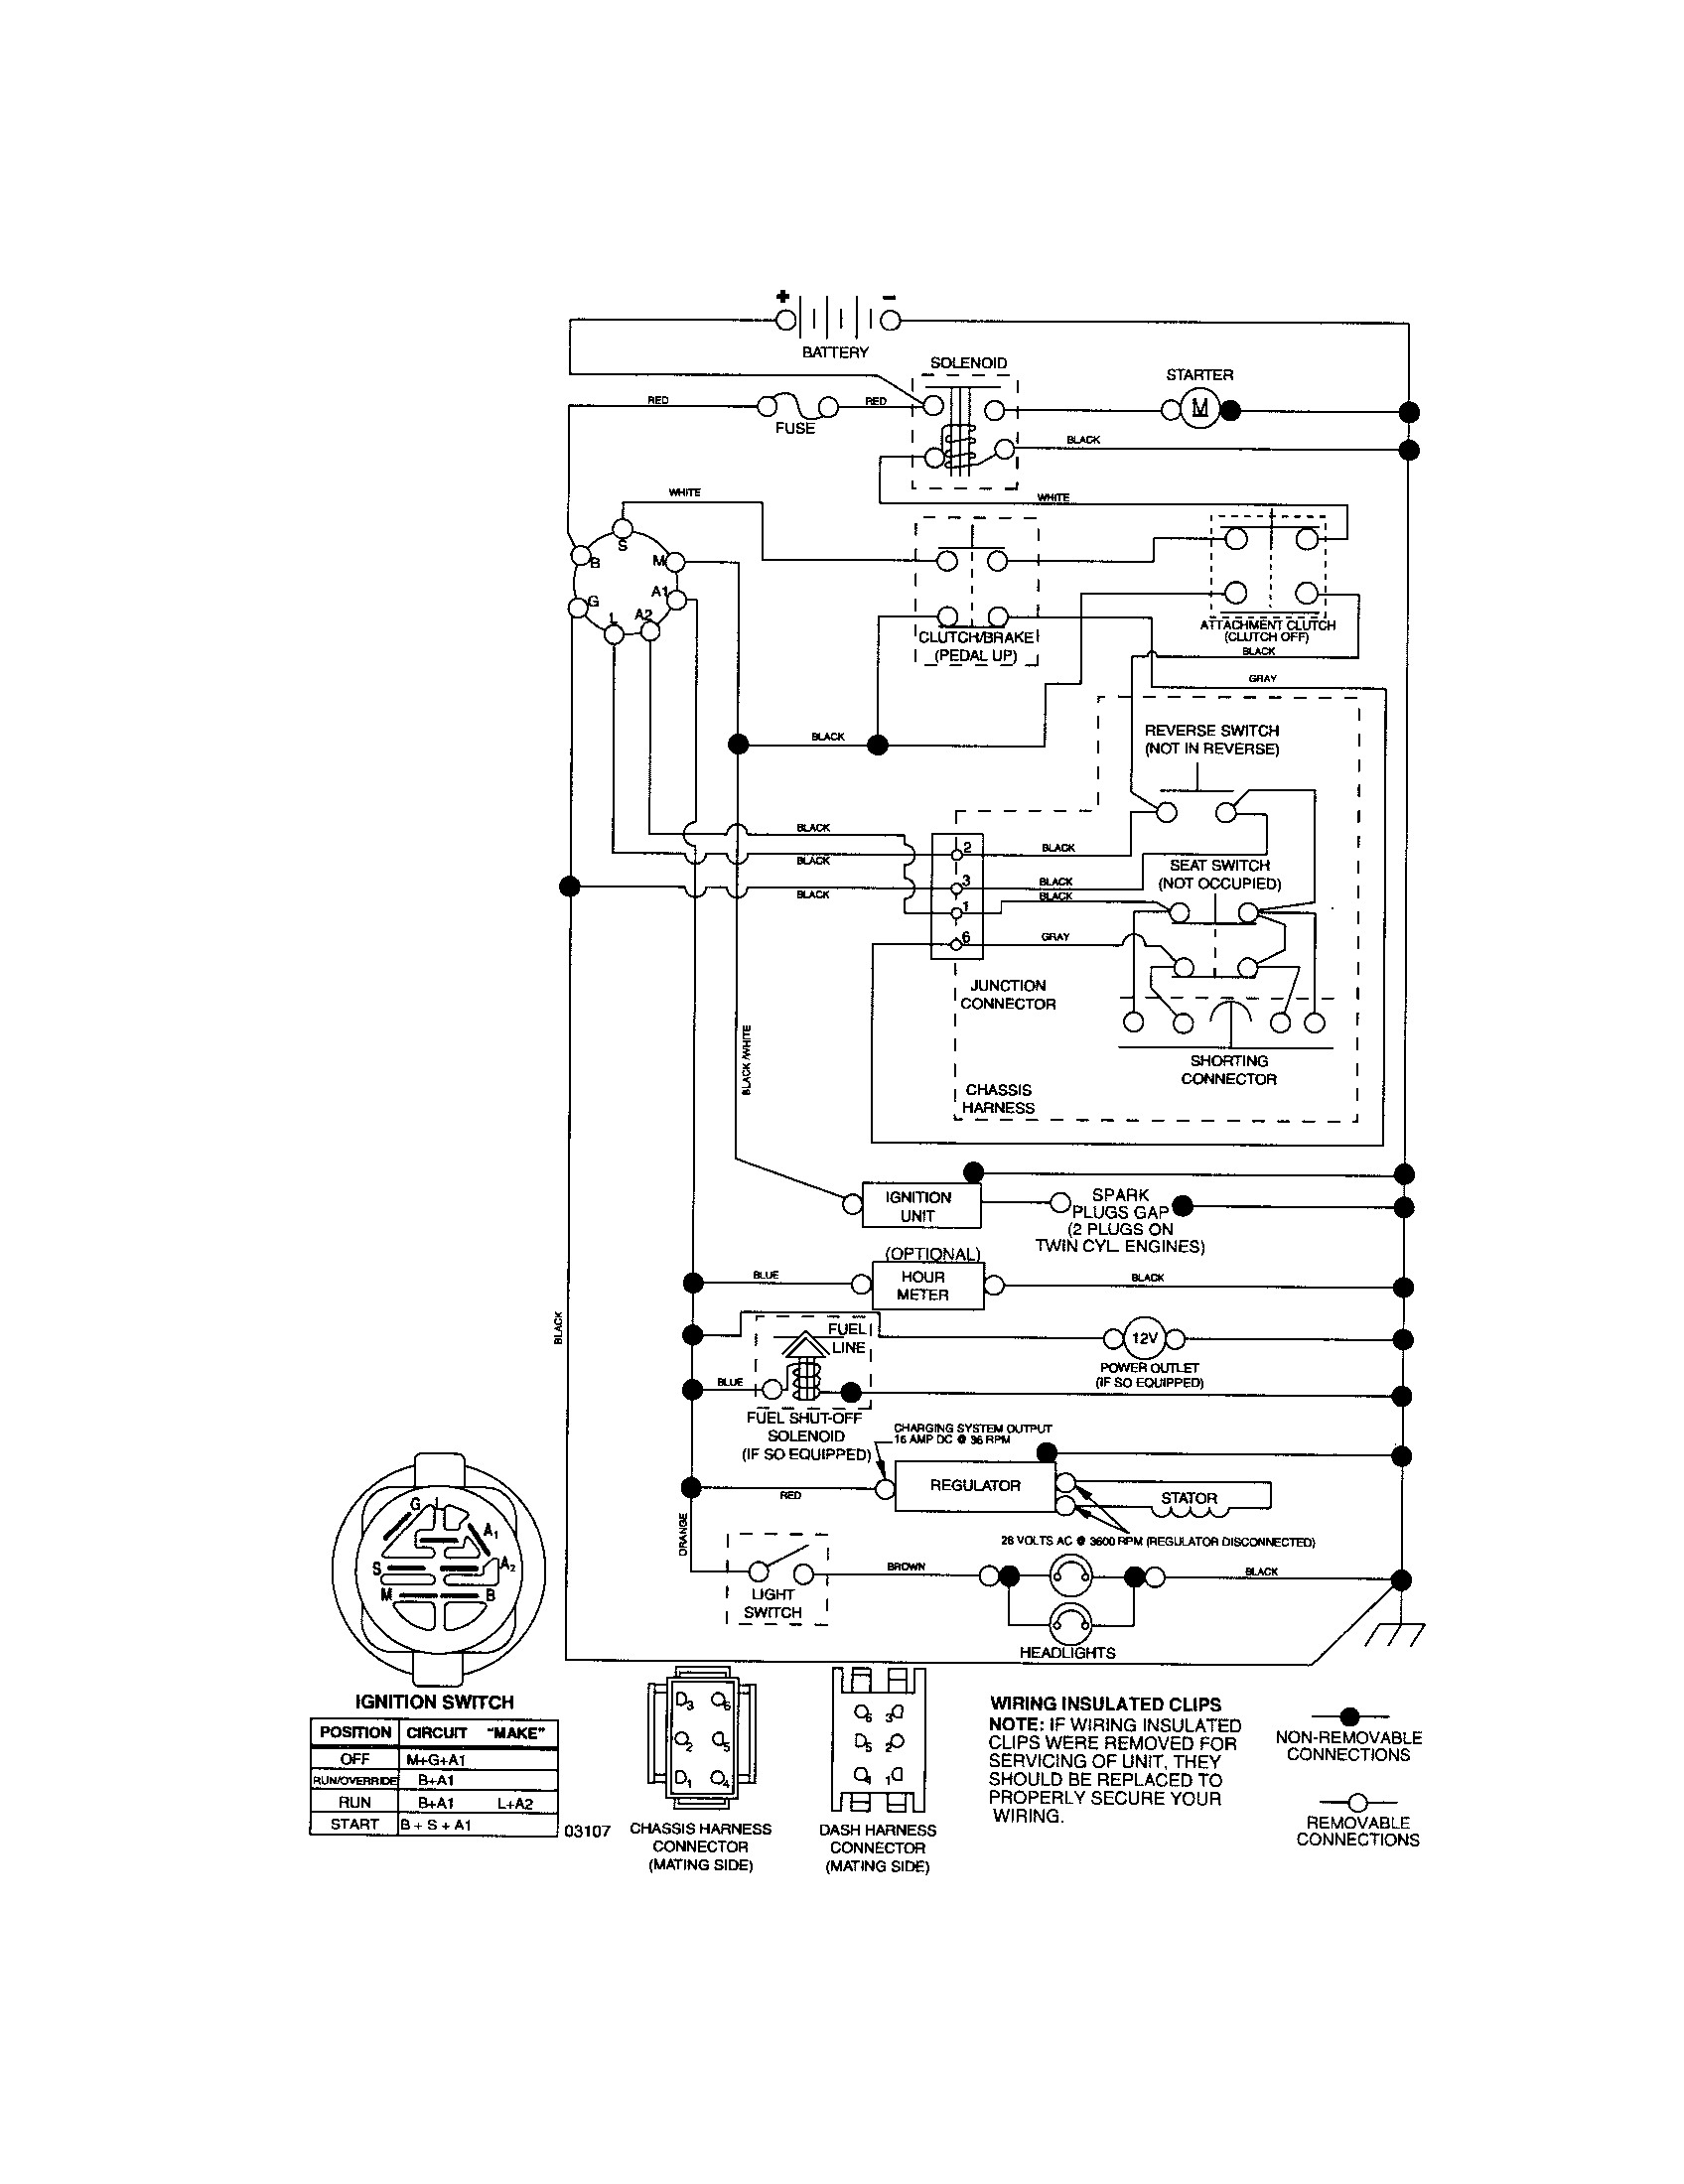 hight resolution of riding lawn mower ignition switch wiring diagram collection lawn mower ignition switch wiring diagram new